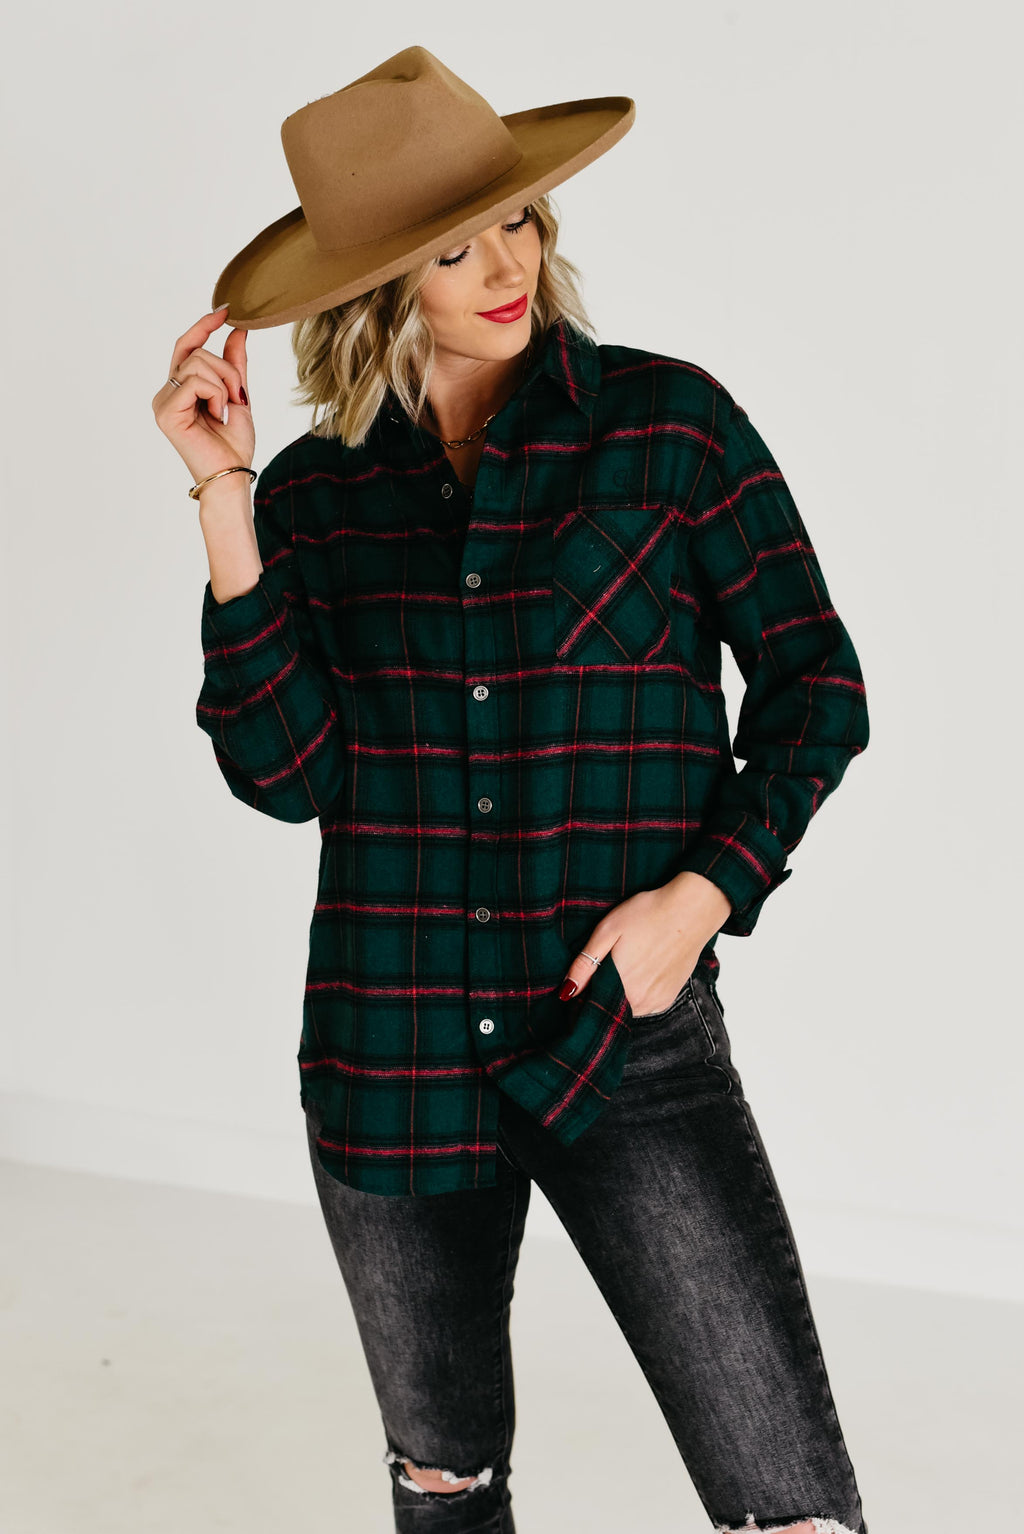 The Ryan Plaid Top - Hunter Green